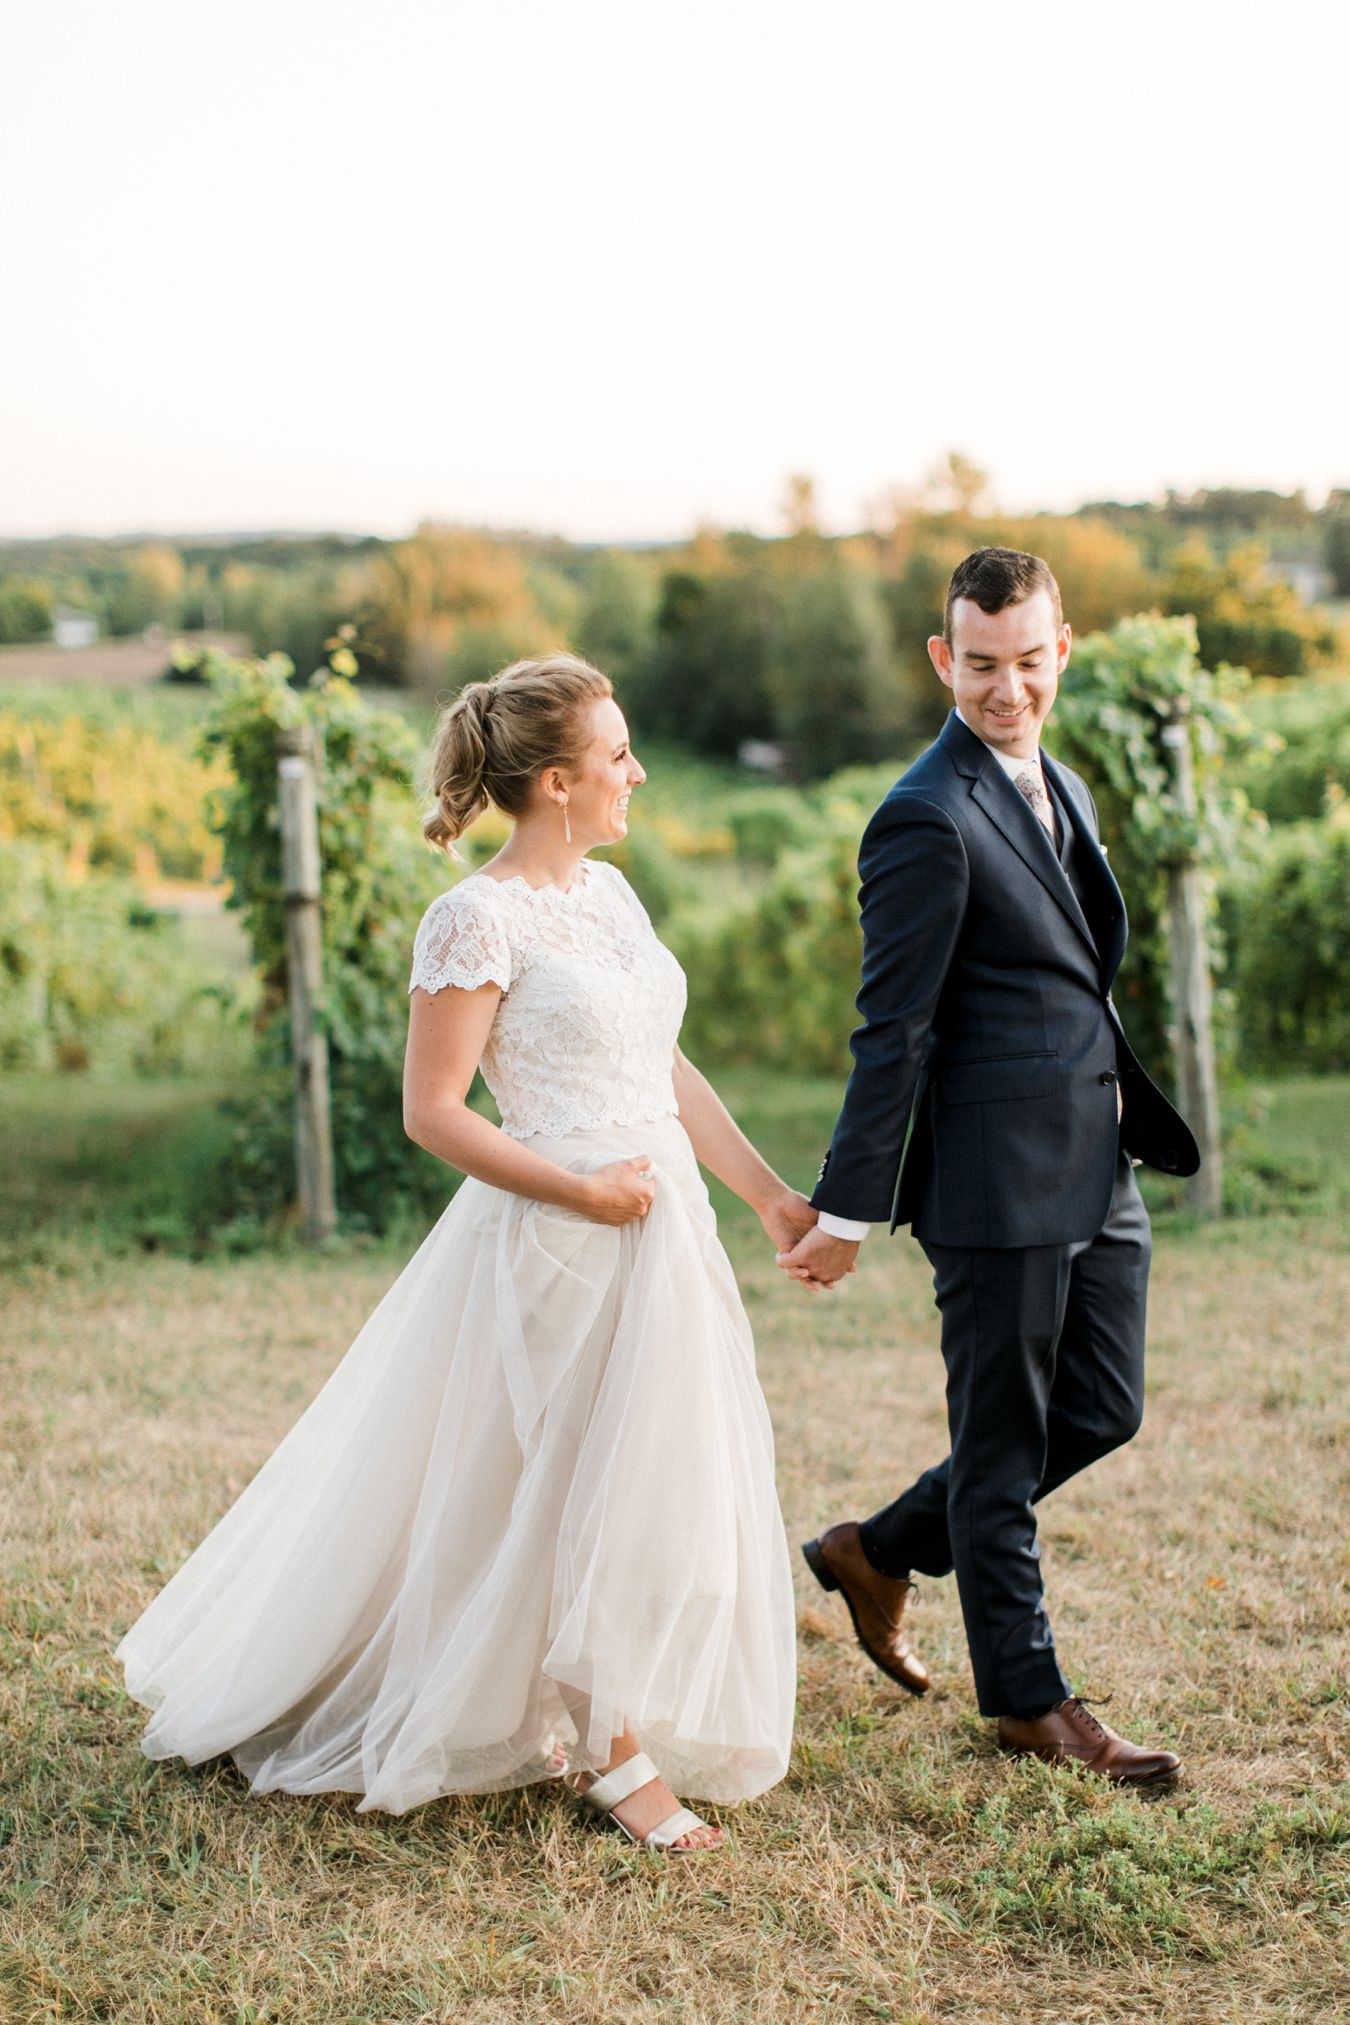 Northern Michigan Wedding Photography | Cory Weber Photography